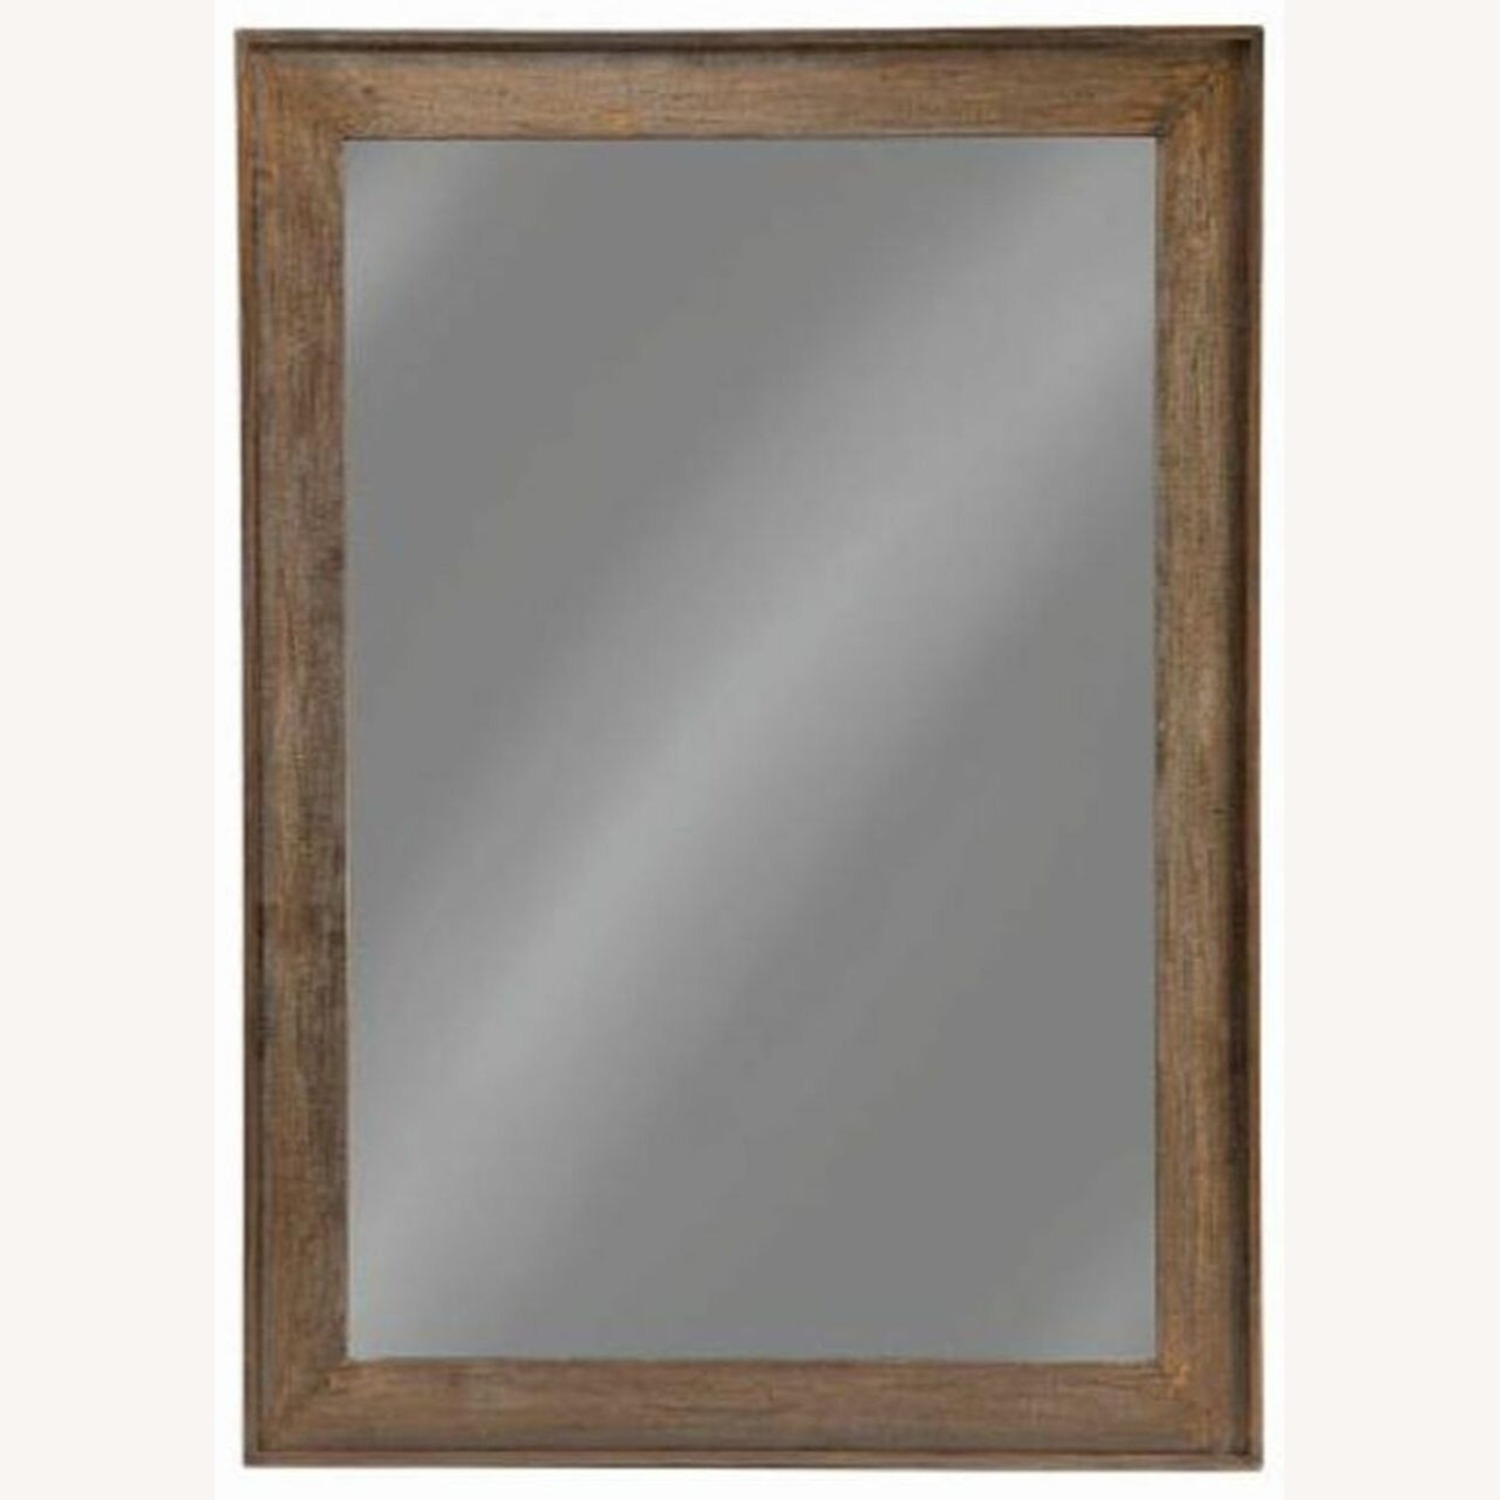 Mirror W/ Contoured Pine Frame & Distressed Look - image-2